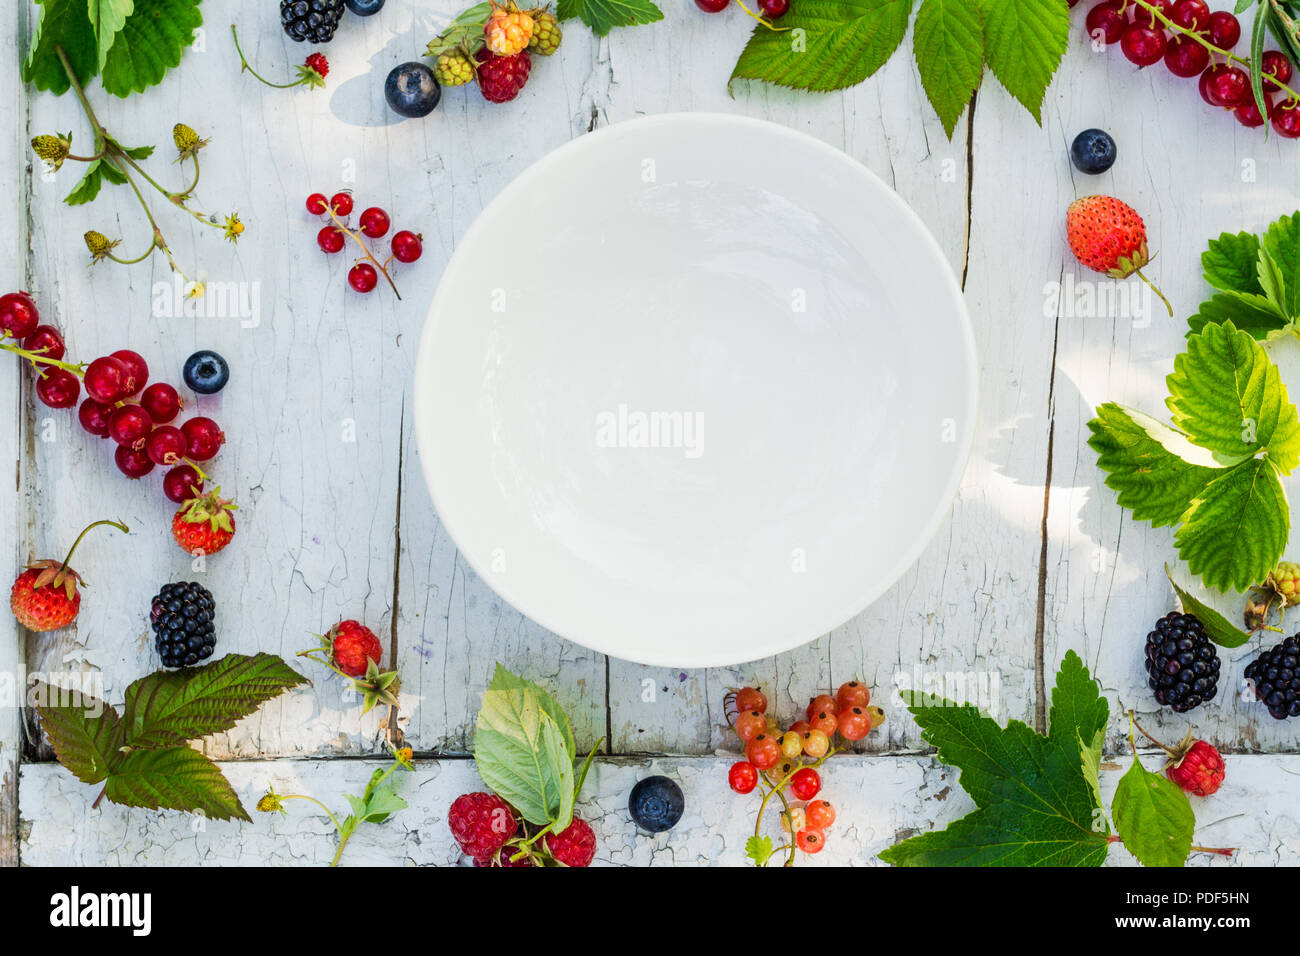 White empty plate on sunny background with berries - Stock Image